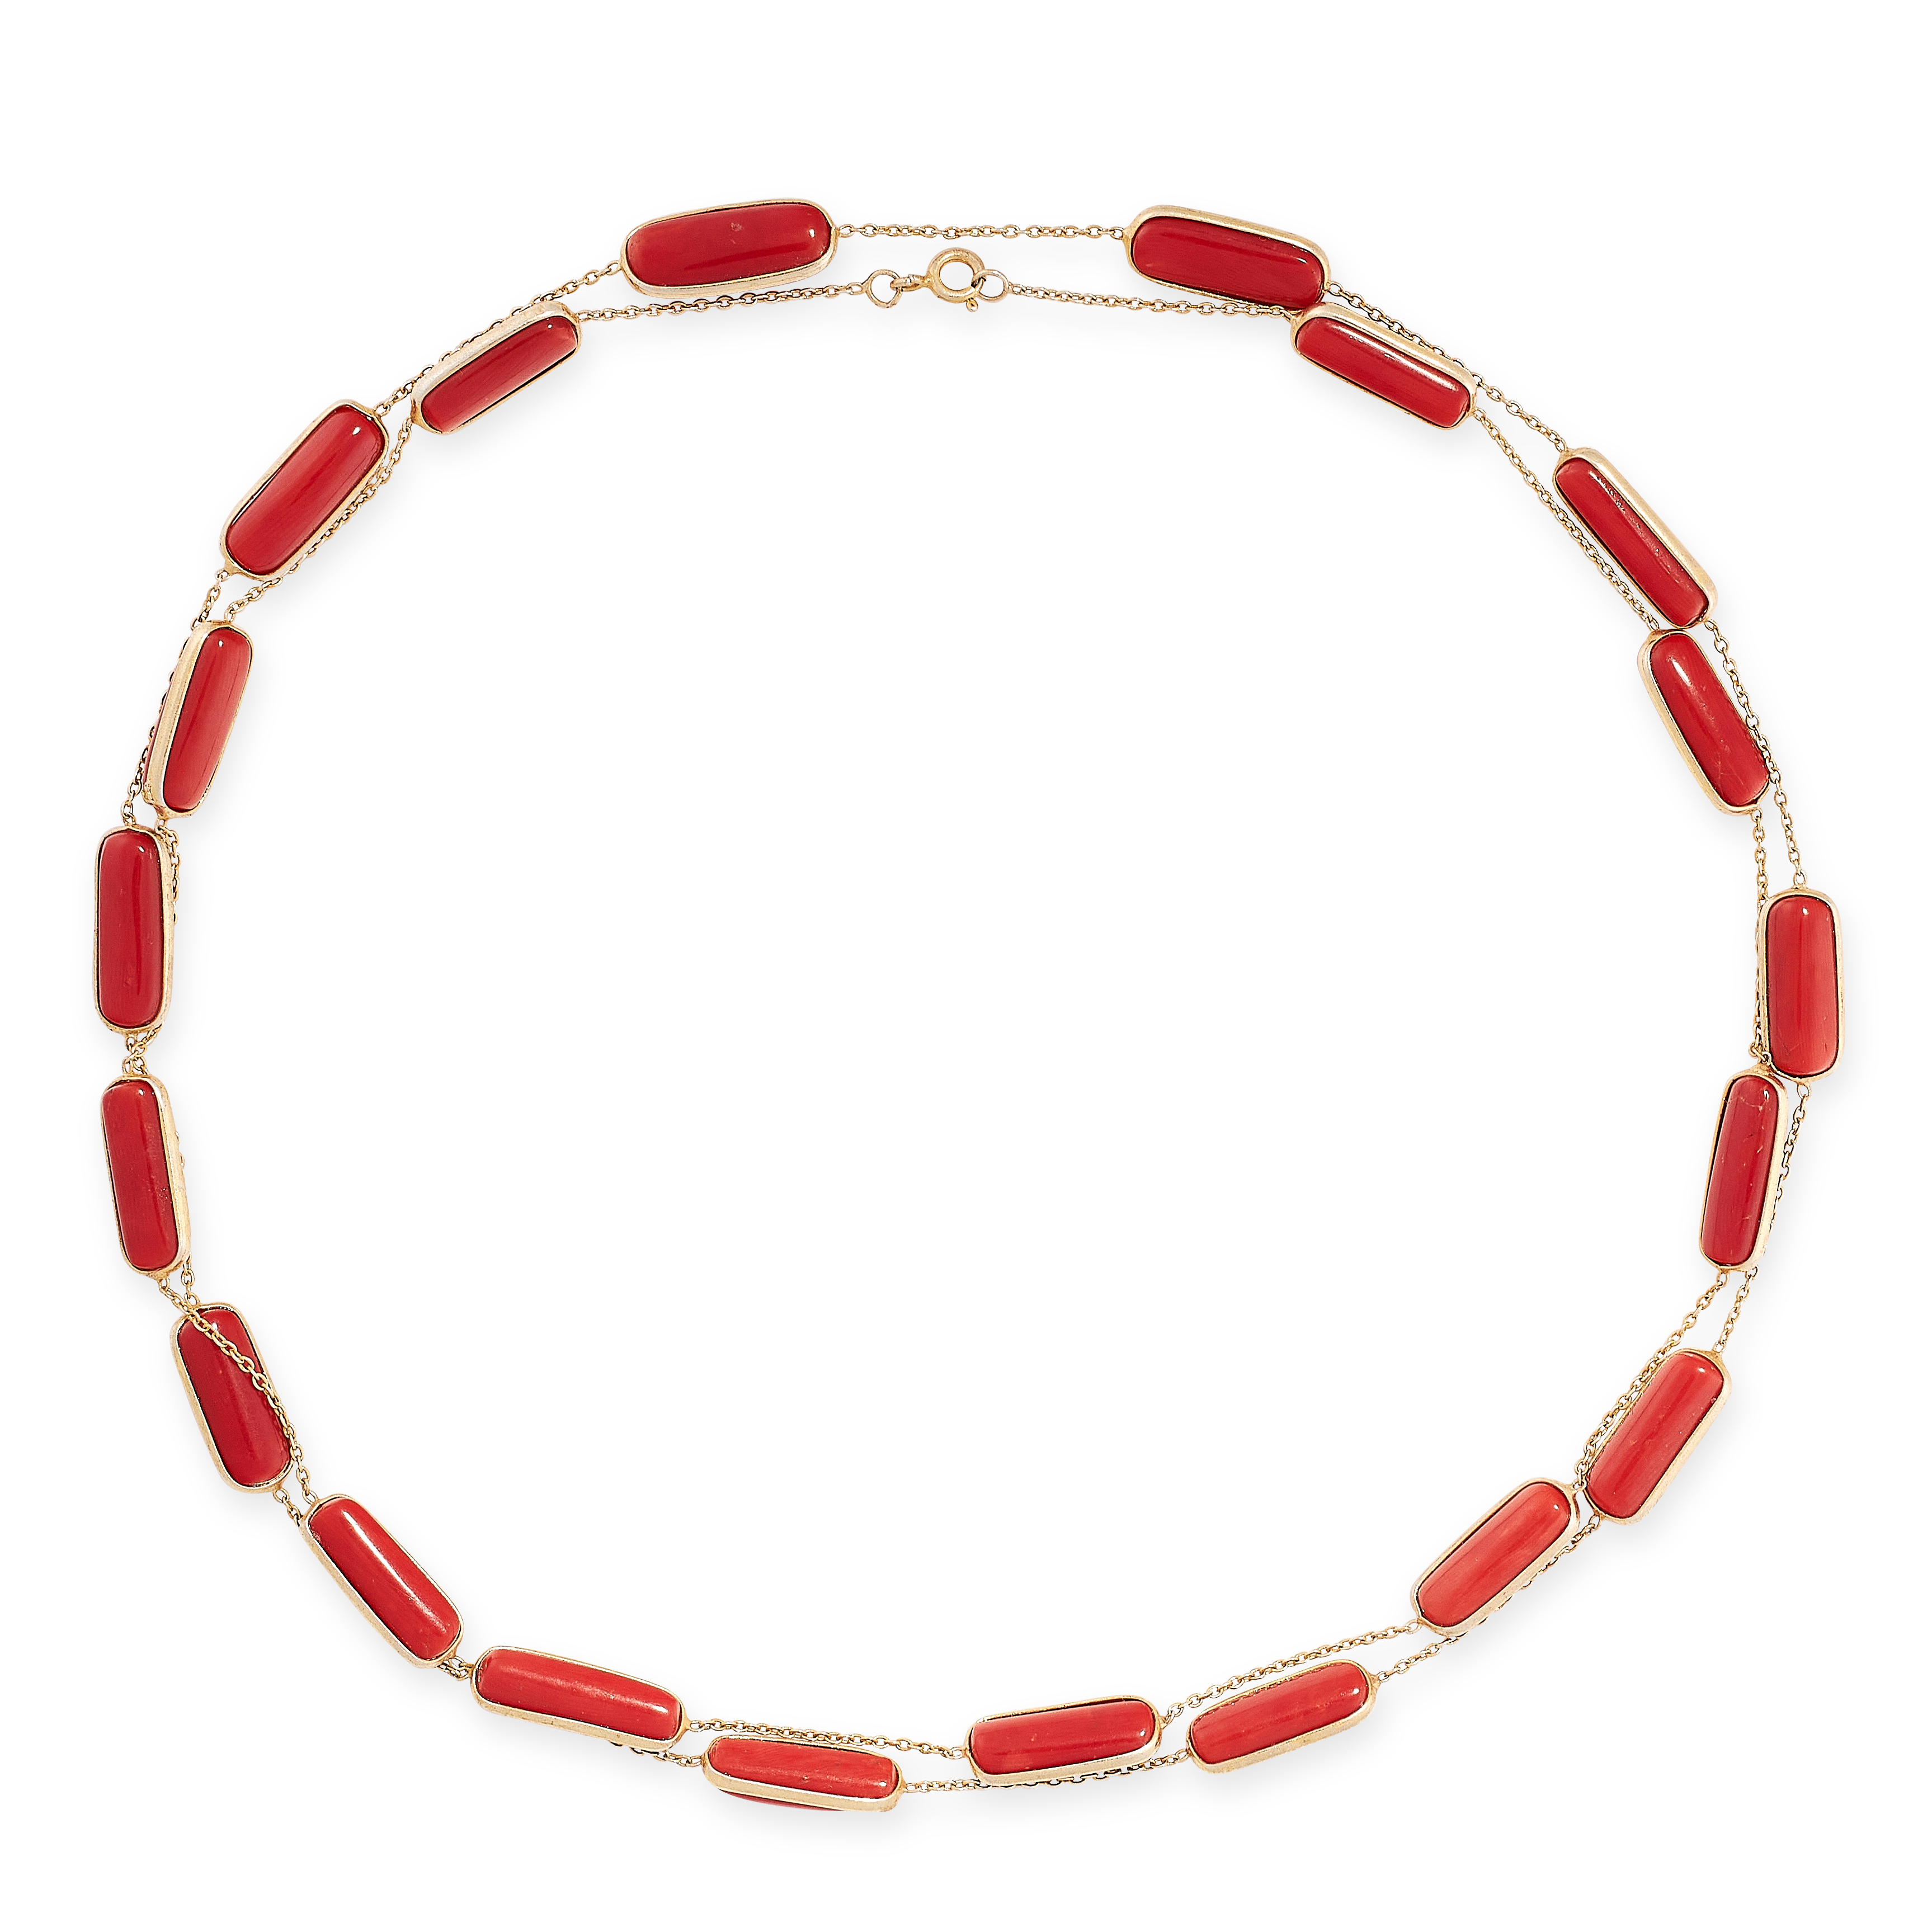 CORAL SAUTOIR AND EARRINGS SUITE the necklace comprises of twenty polished coral batons on chain,